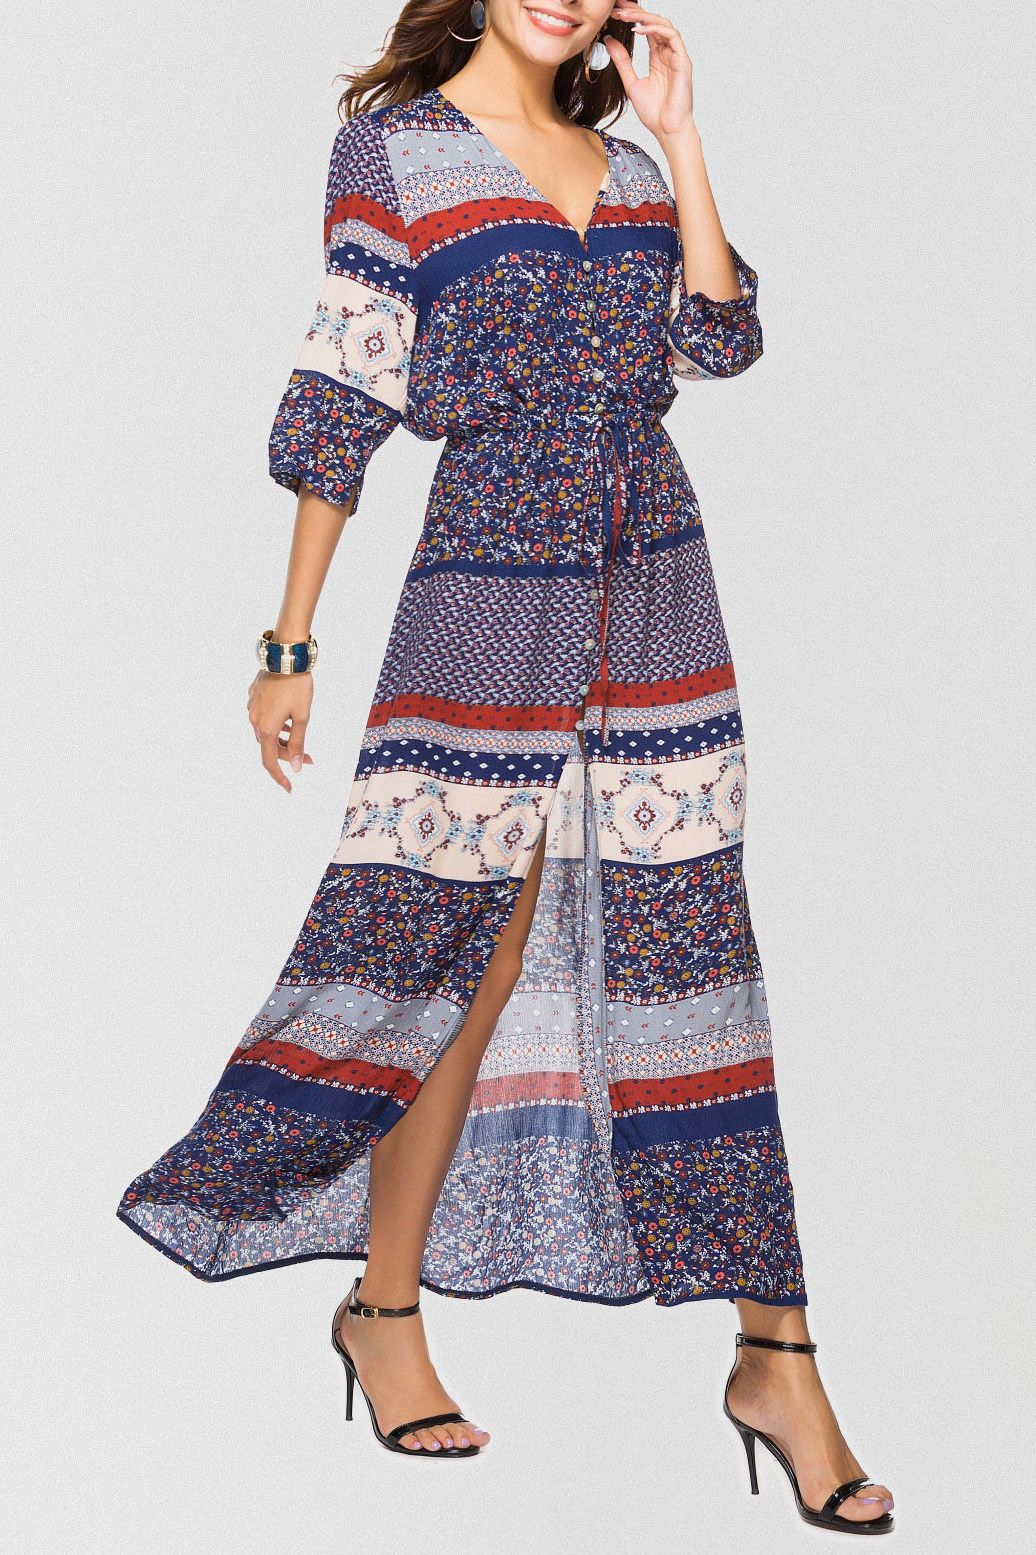 cheaper online here best choice Coast Summer Dresses 2018 - Carley & Connellan